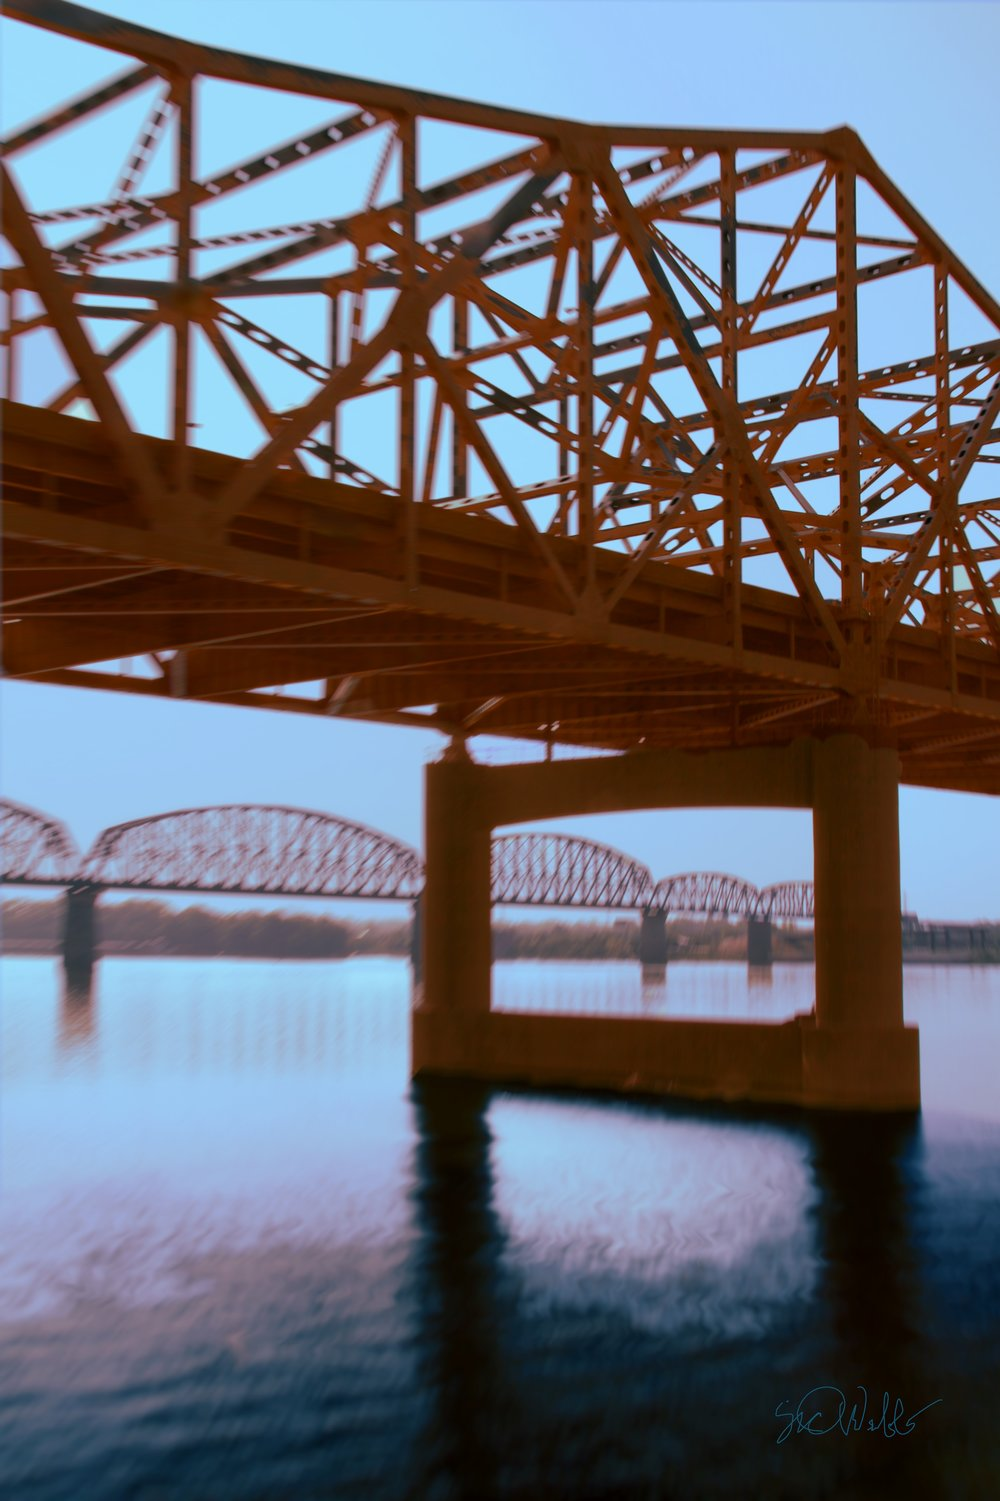 """Bridges"" by Sid Webb, Photograph, 12x18in, 2018, $125"